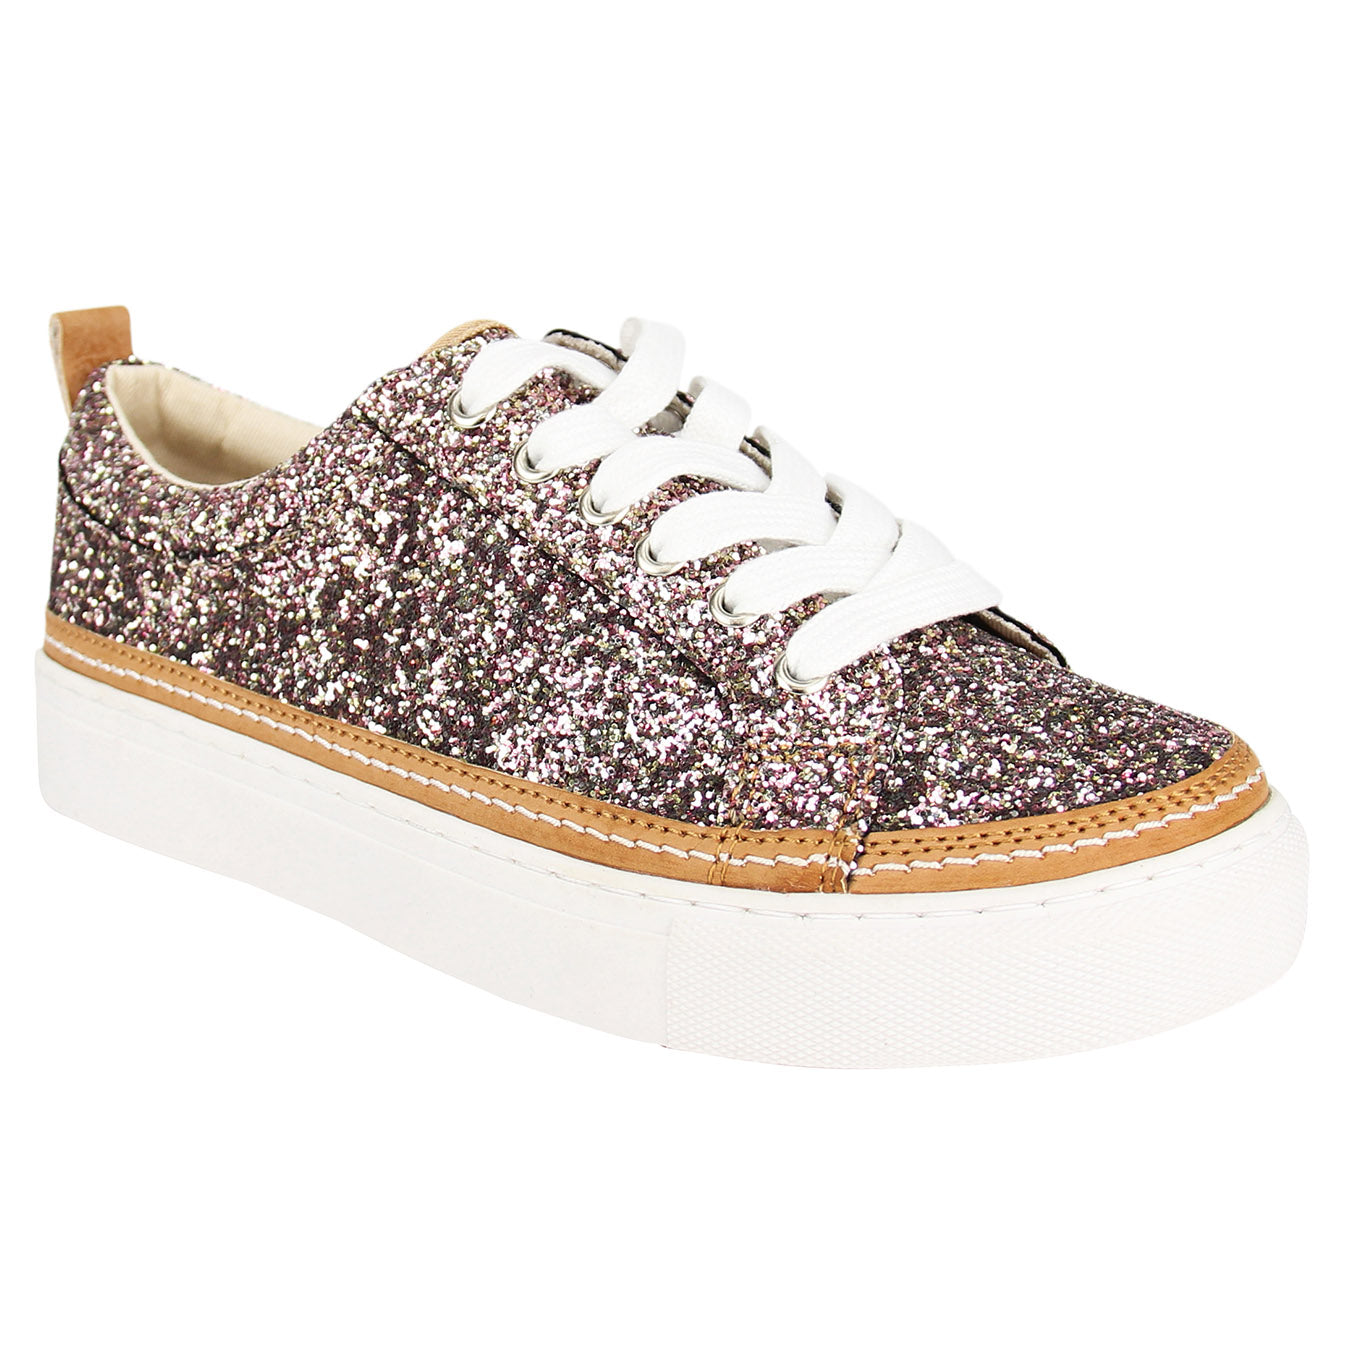 Not_Rated_women's_sneaker_glitter_sparkle_Chestnut